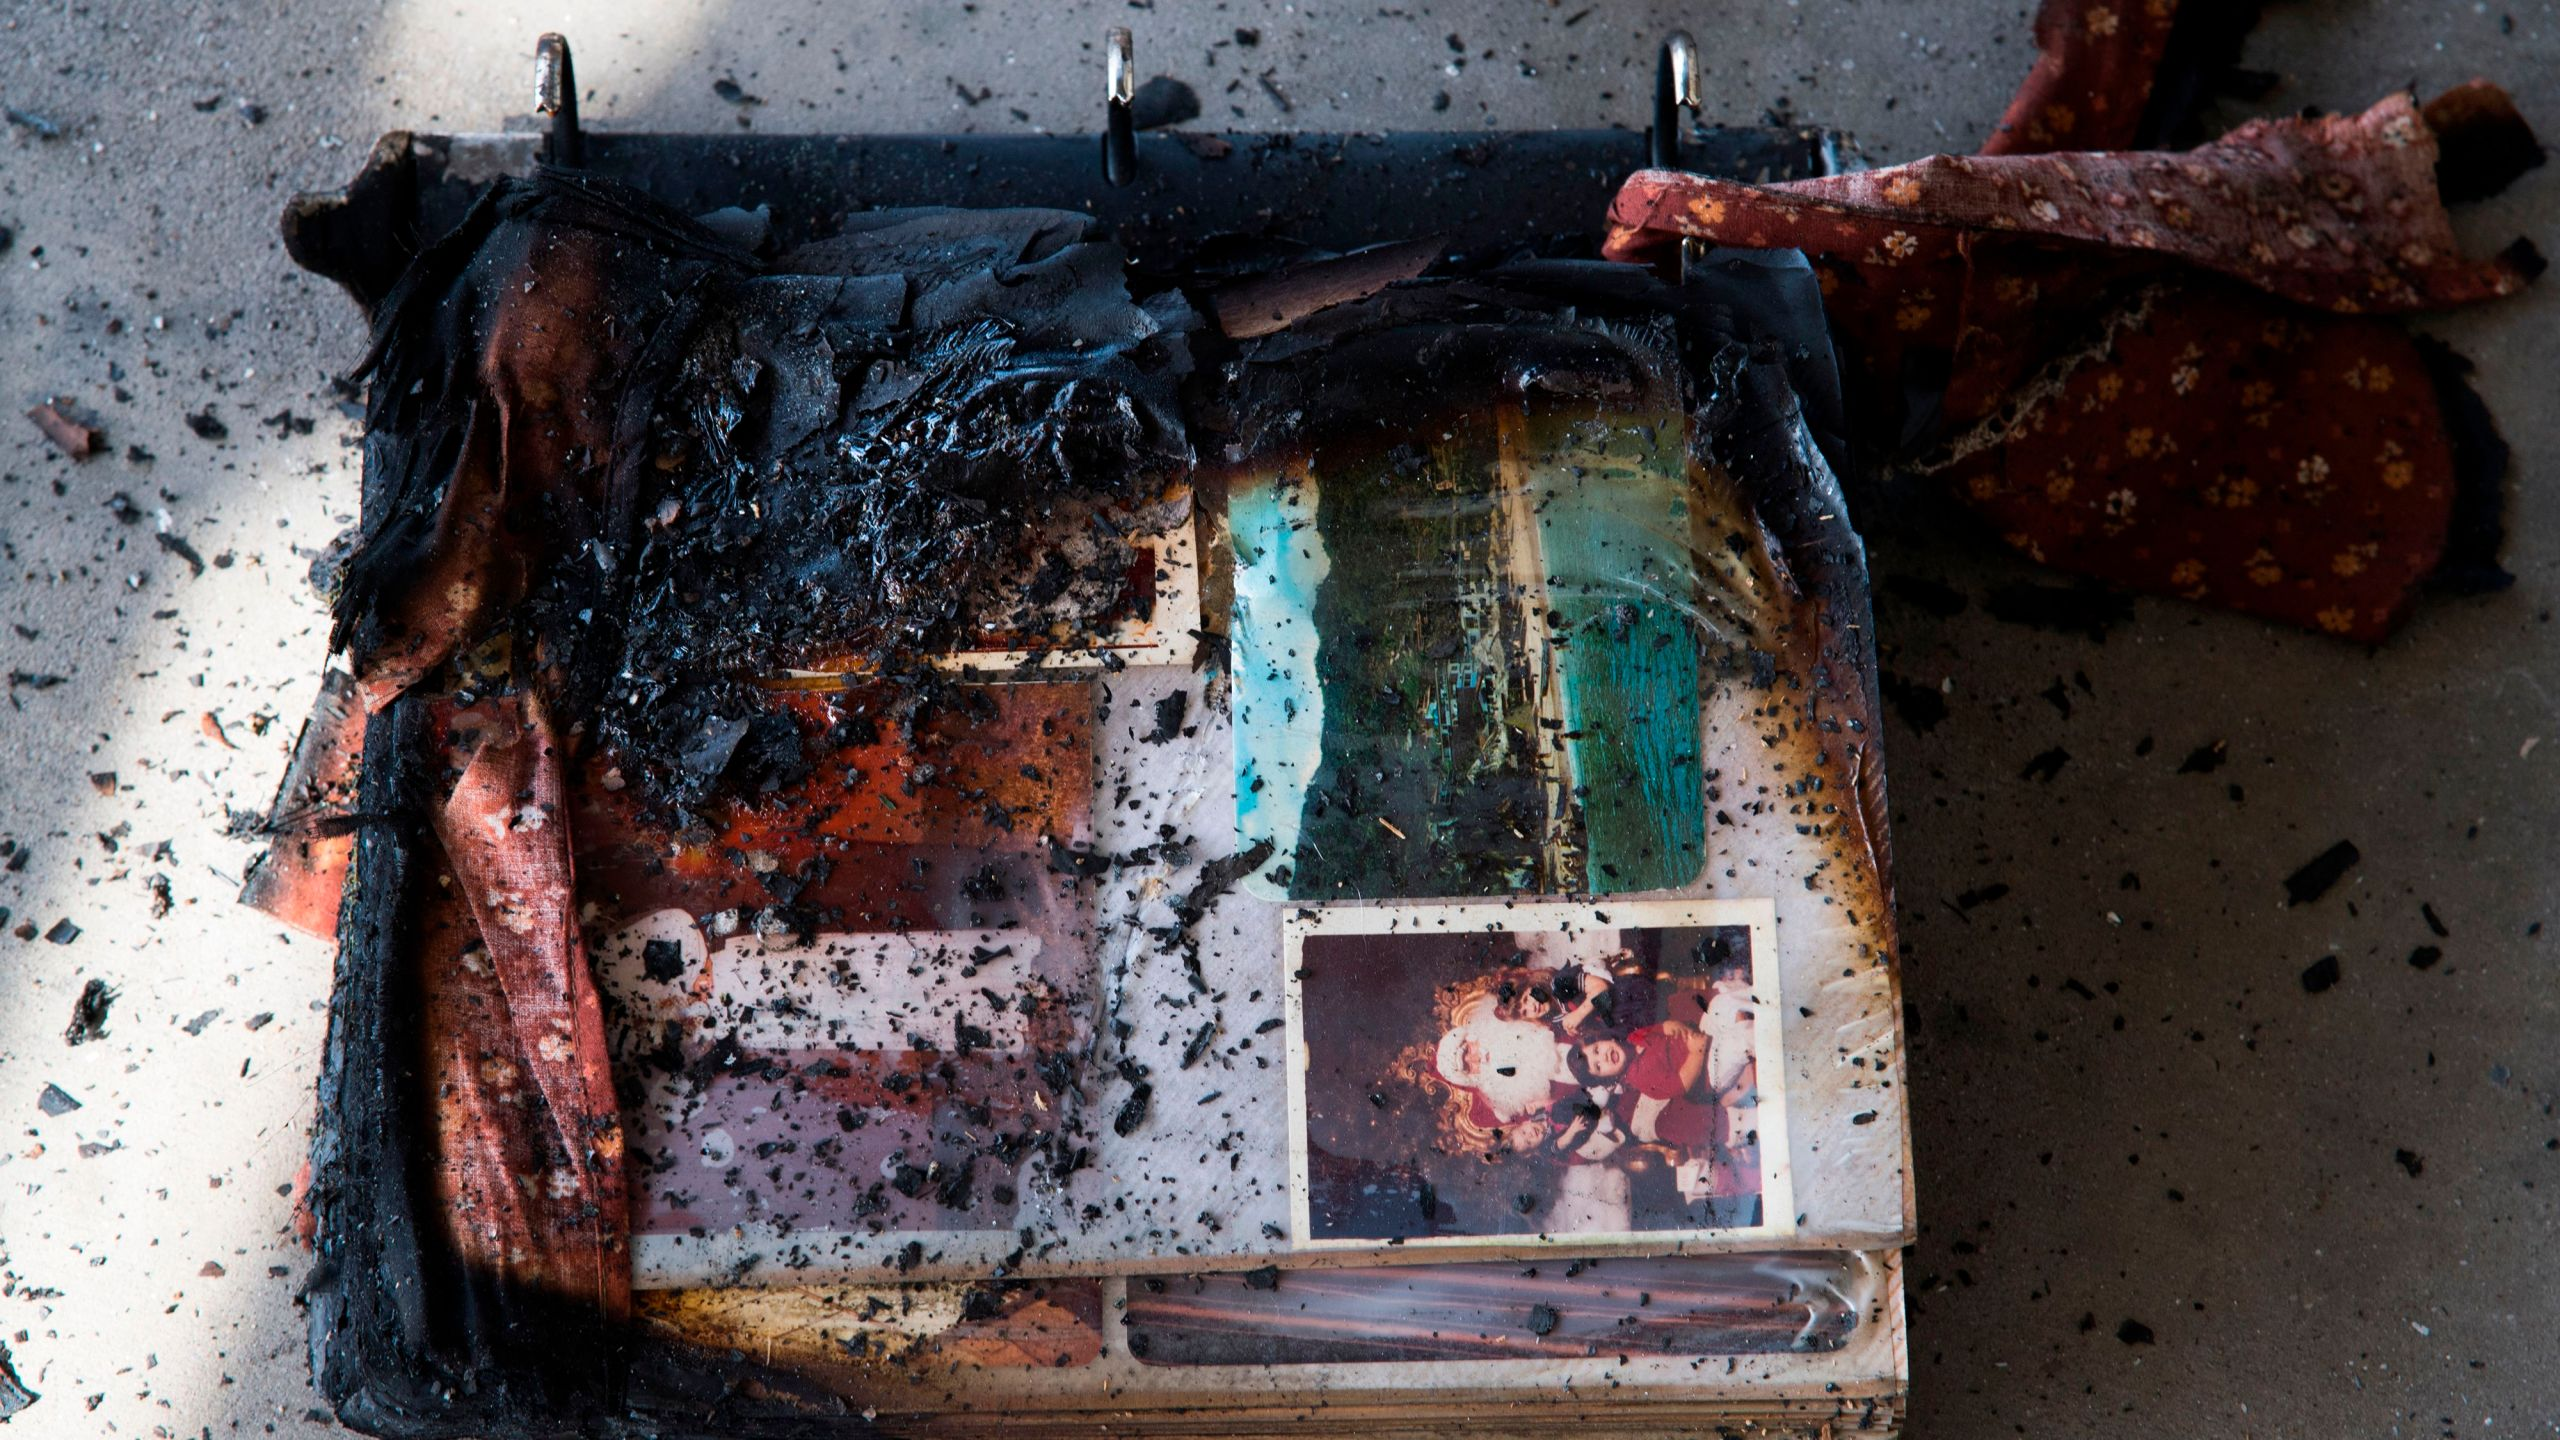 A photo album damaged by fire is see amid the destruction of the Lilac Fire, Dec. 8, 2017, at a retirement community in Fallbrook. (Credit: AFP PHOTO / Robyn Beck)